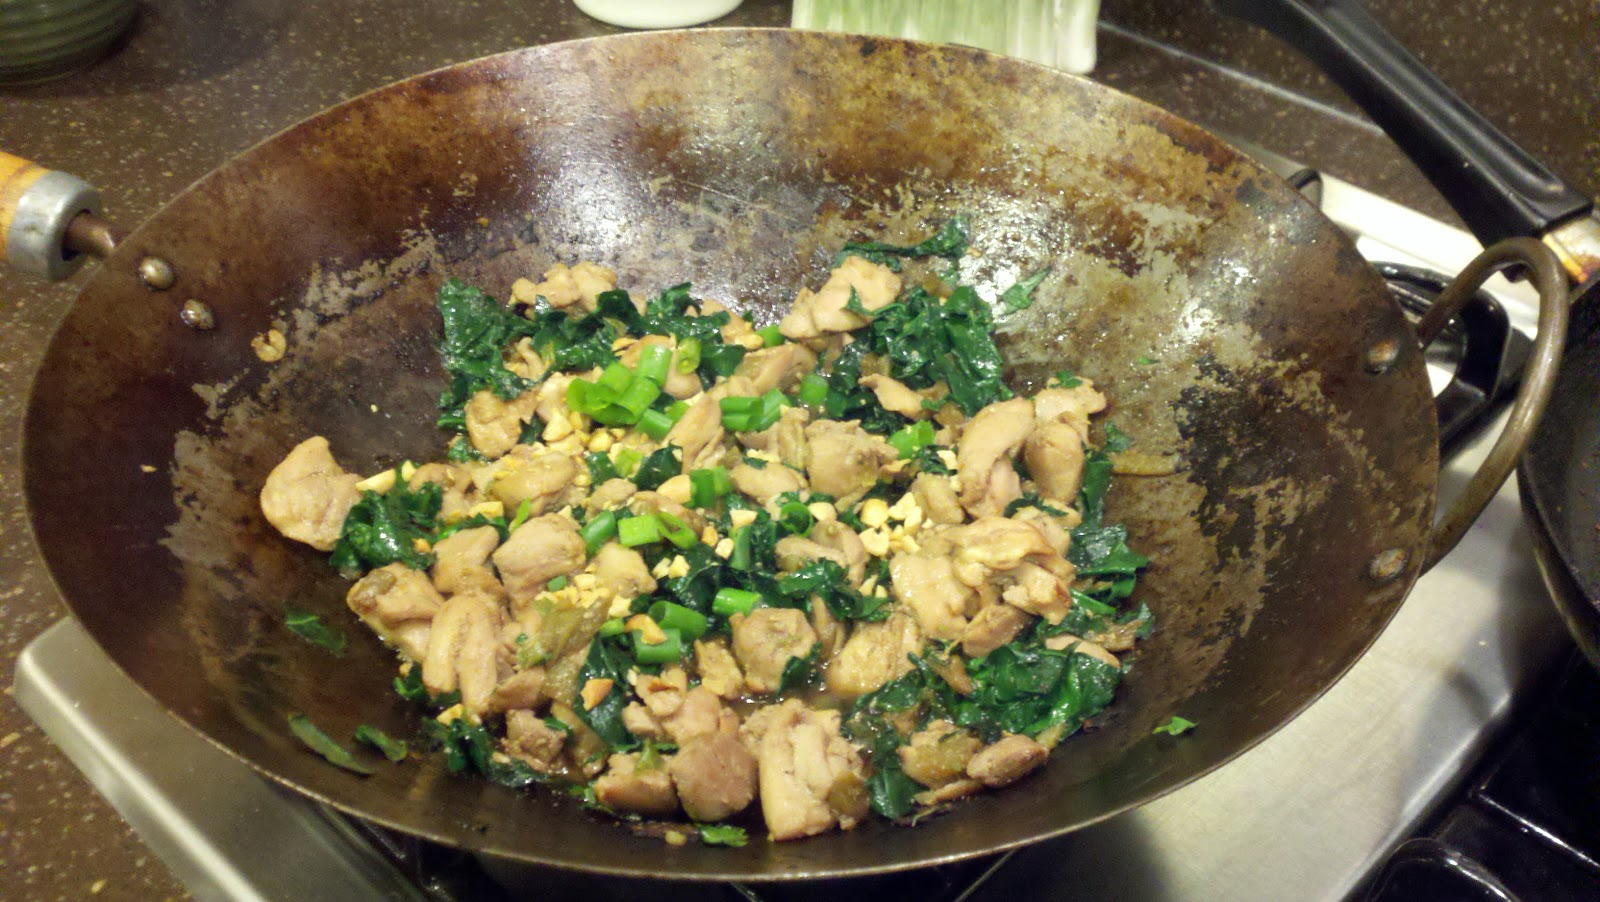 ... with my local CSA: Spicy Stir Fried Chicken and Greens with Peanuts